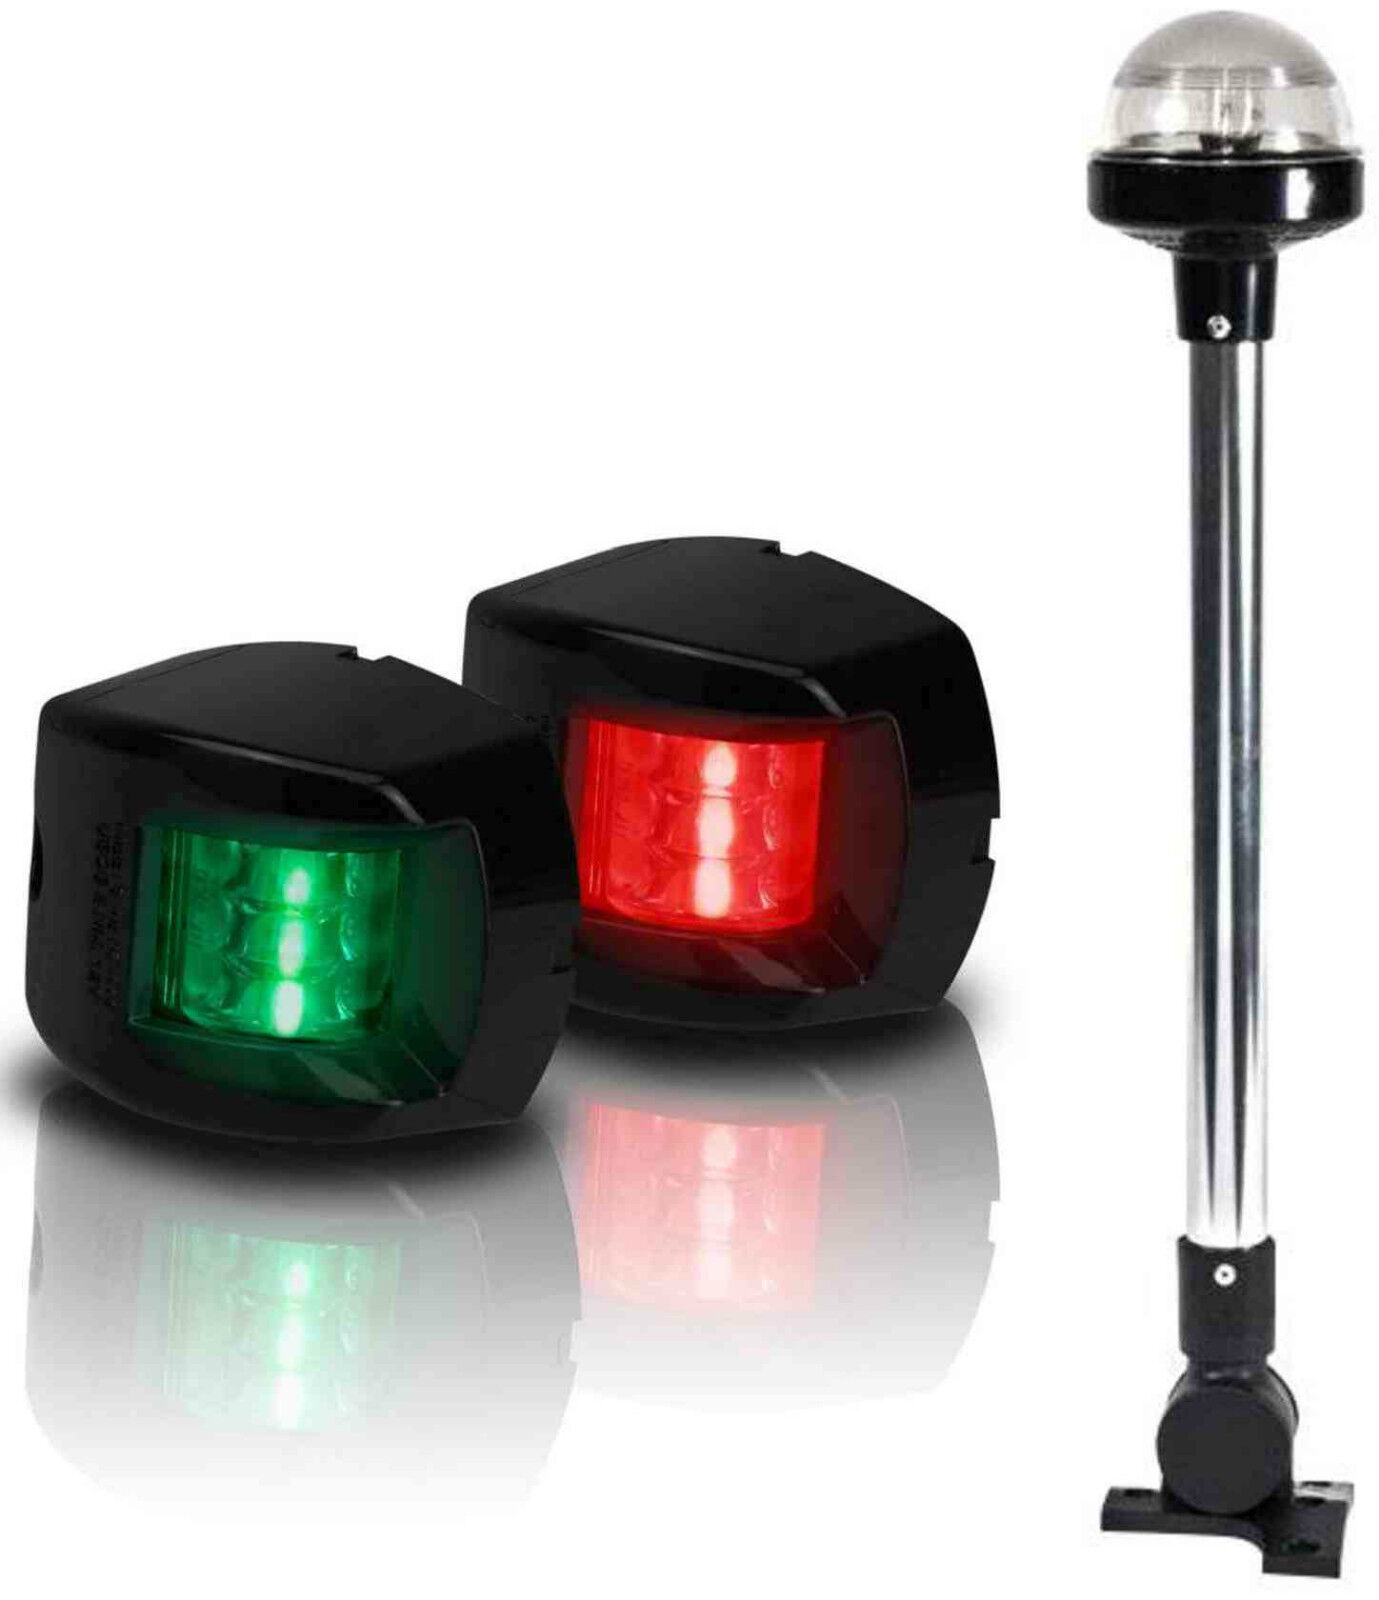 12 Volt Marine Lights: BOAT LED NAVIGATION LIGHTS KIT 3 Nav Light Package Port